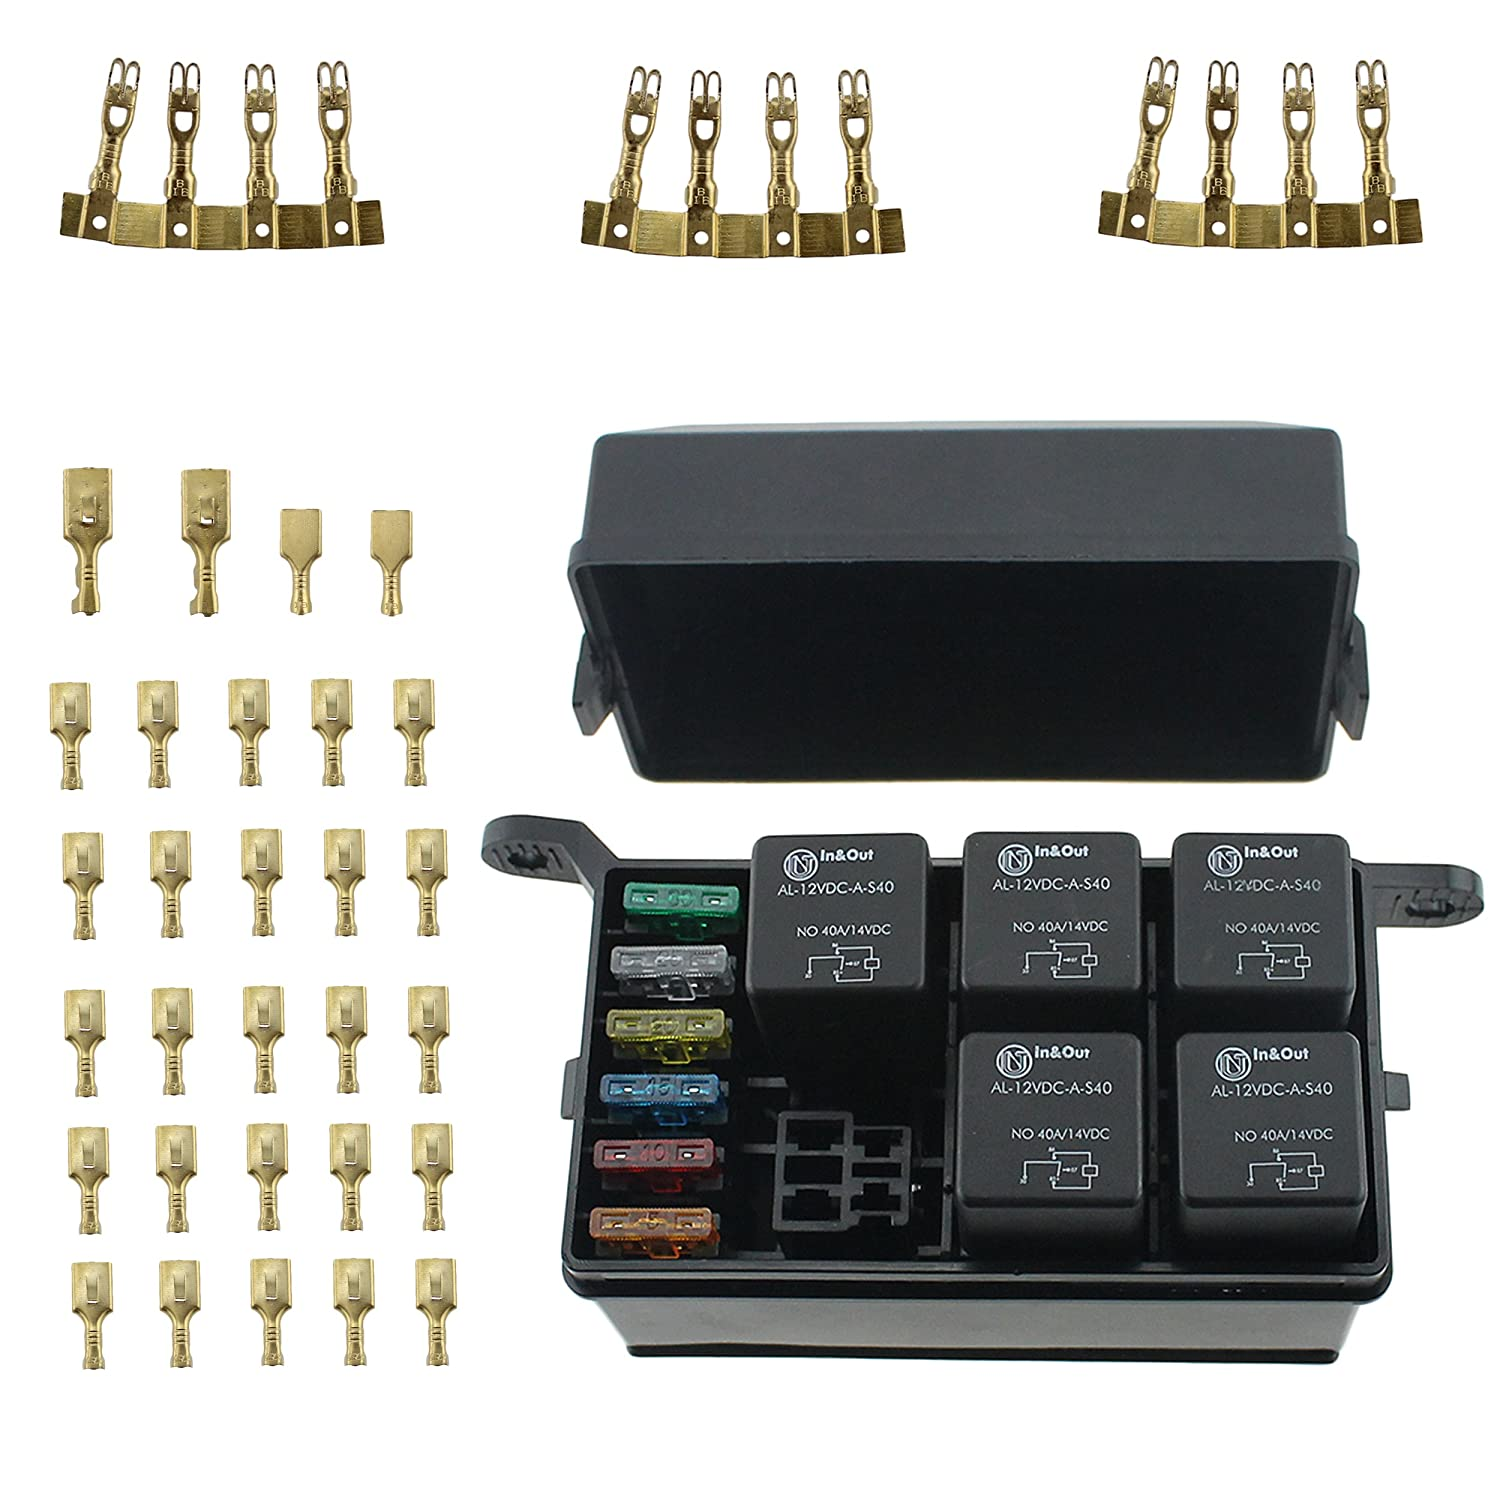 81Uj6Pmk1gL._SL1500_ amazon com fuse boxes fuses & accessories automotive  at reclaimingppi.co